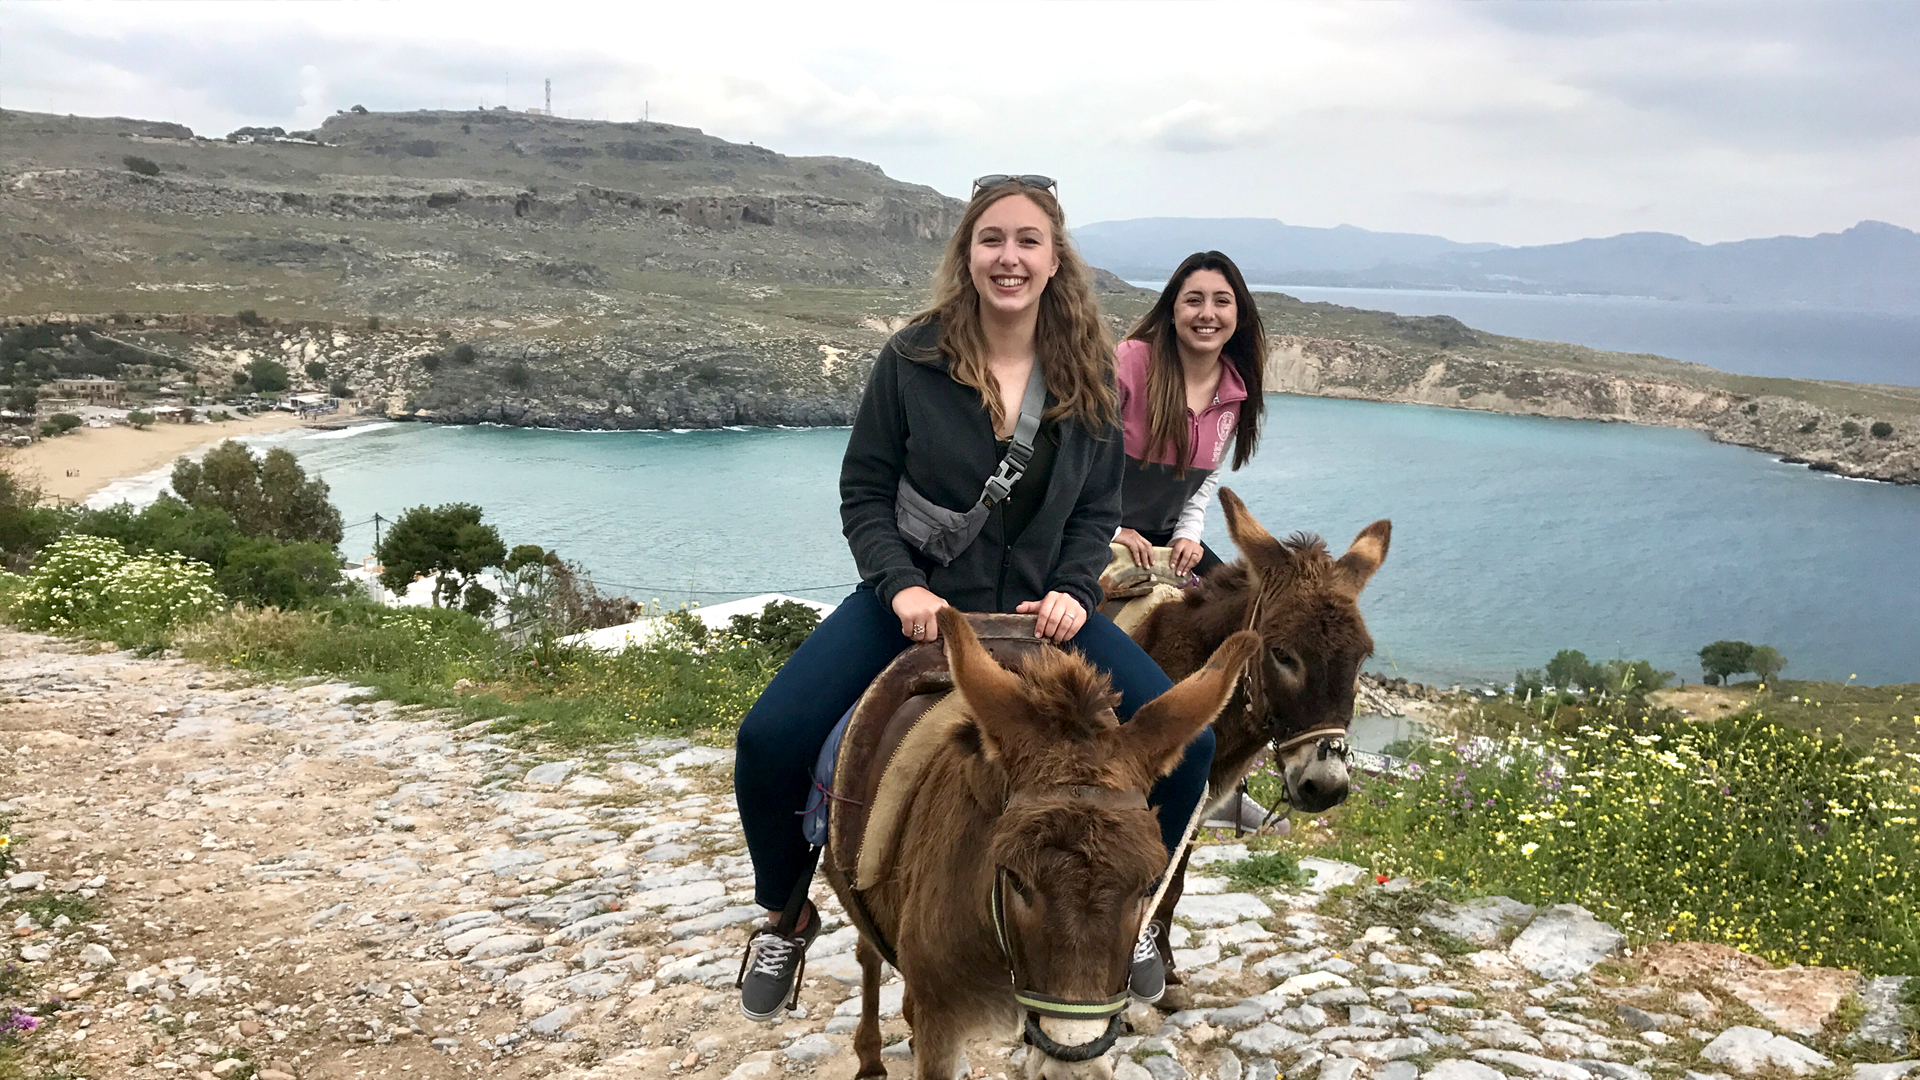 Two students on a Study Abroad trip in Greece.